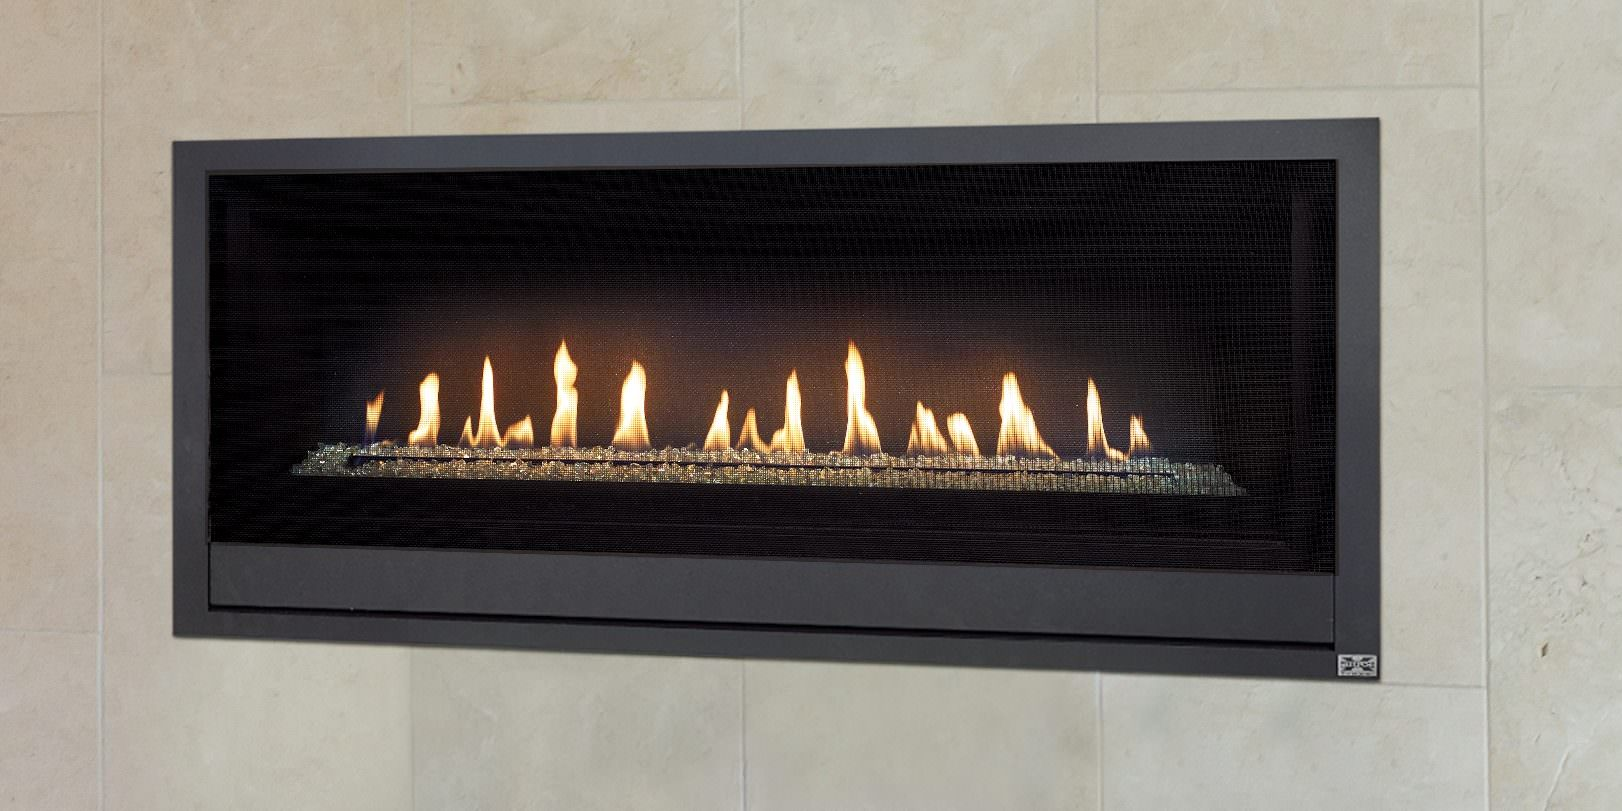 FPX_42 LINEAR PRO BUILDER LINEAR GAS FIREPLACE